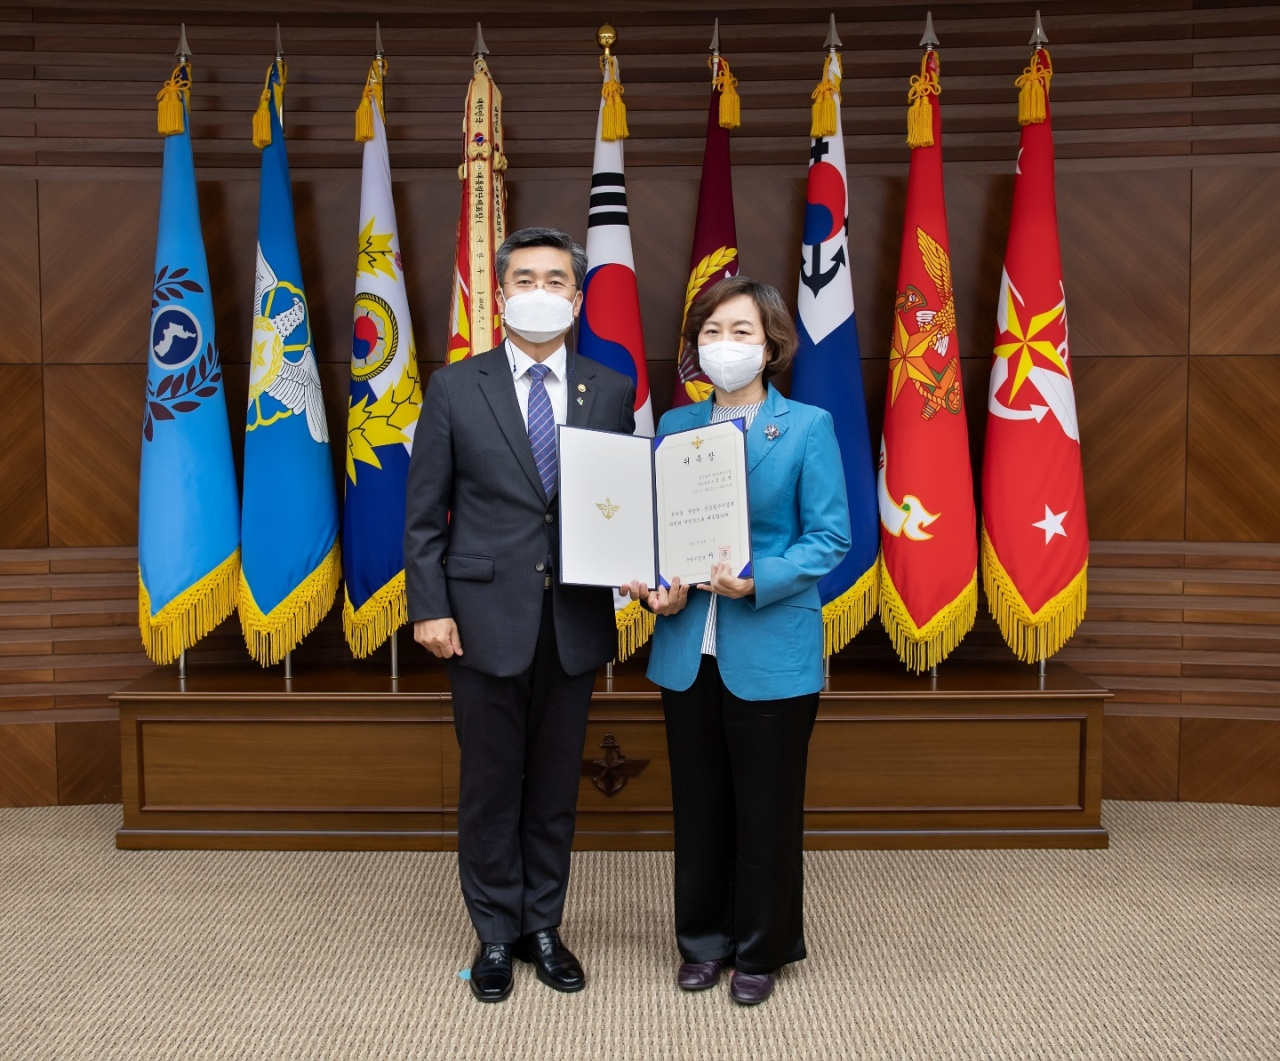 Defense Minister Suh Wook (left) and former Supreme Court Justice Kim So-young. (Ministry of National Defense)